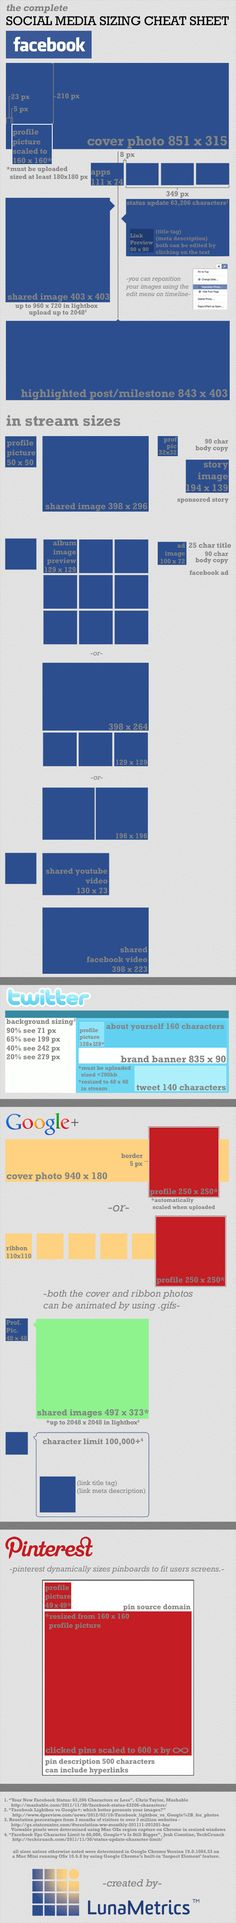 Social Media Cheat Sheet for Image Dimensions - created by Lunametrics [INFOGRAPHIC]  (via SEO Tutorials)